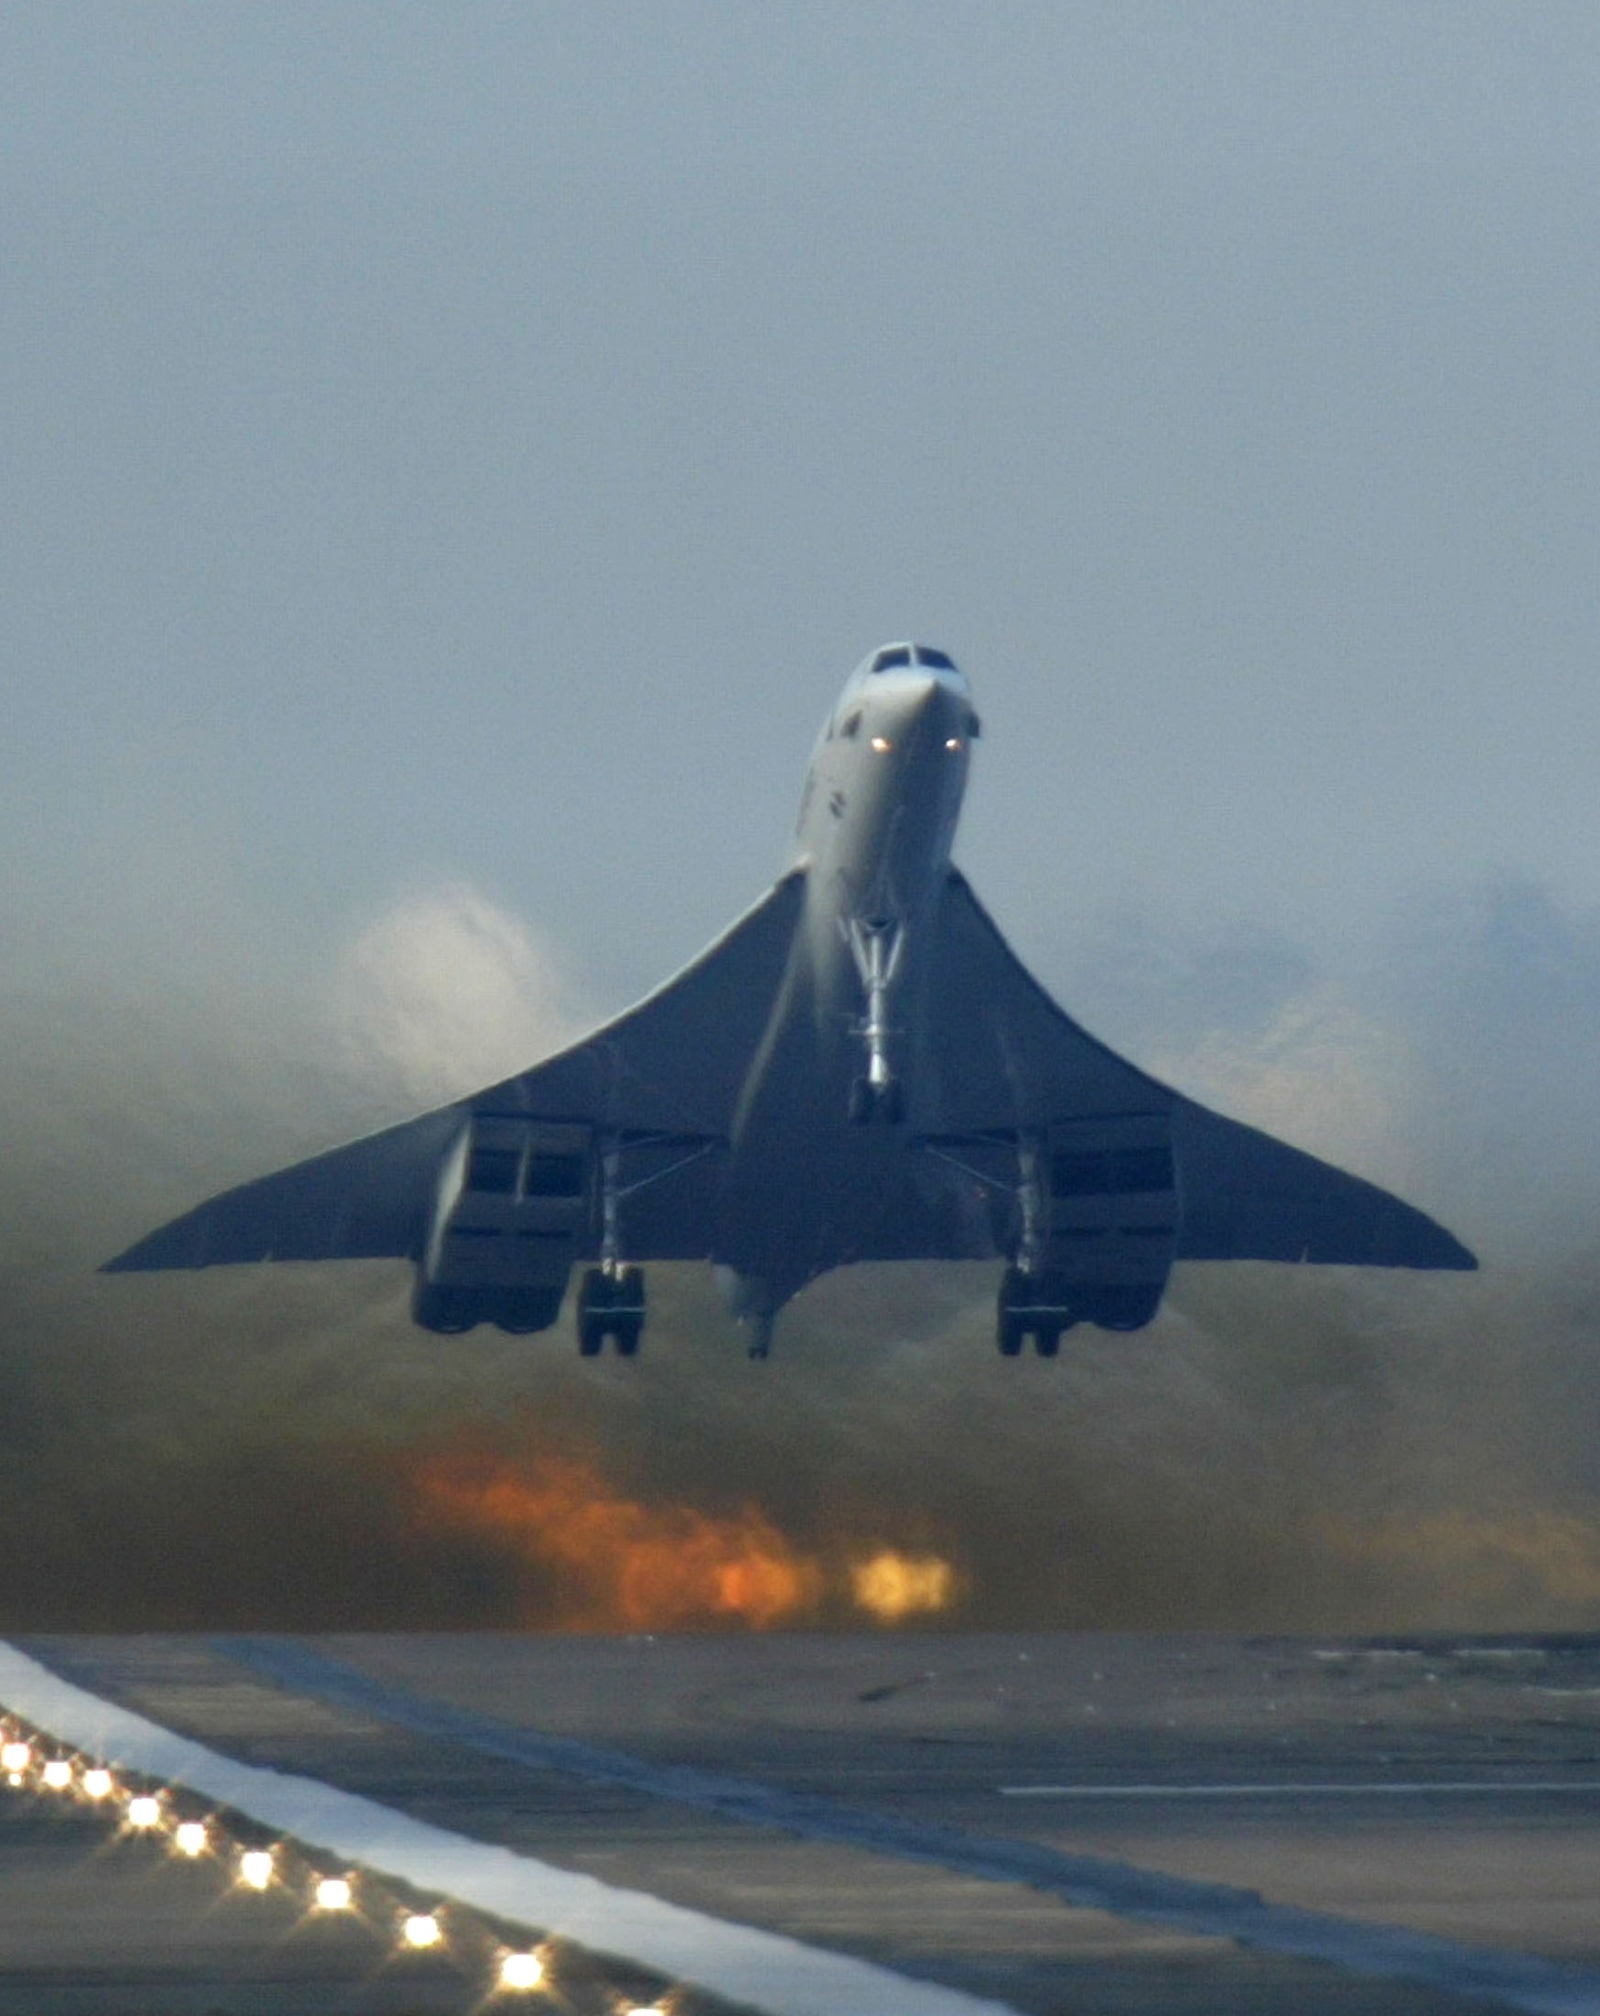 British Airways Concorde flight taking off